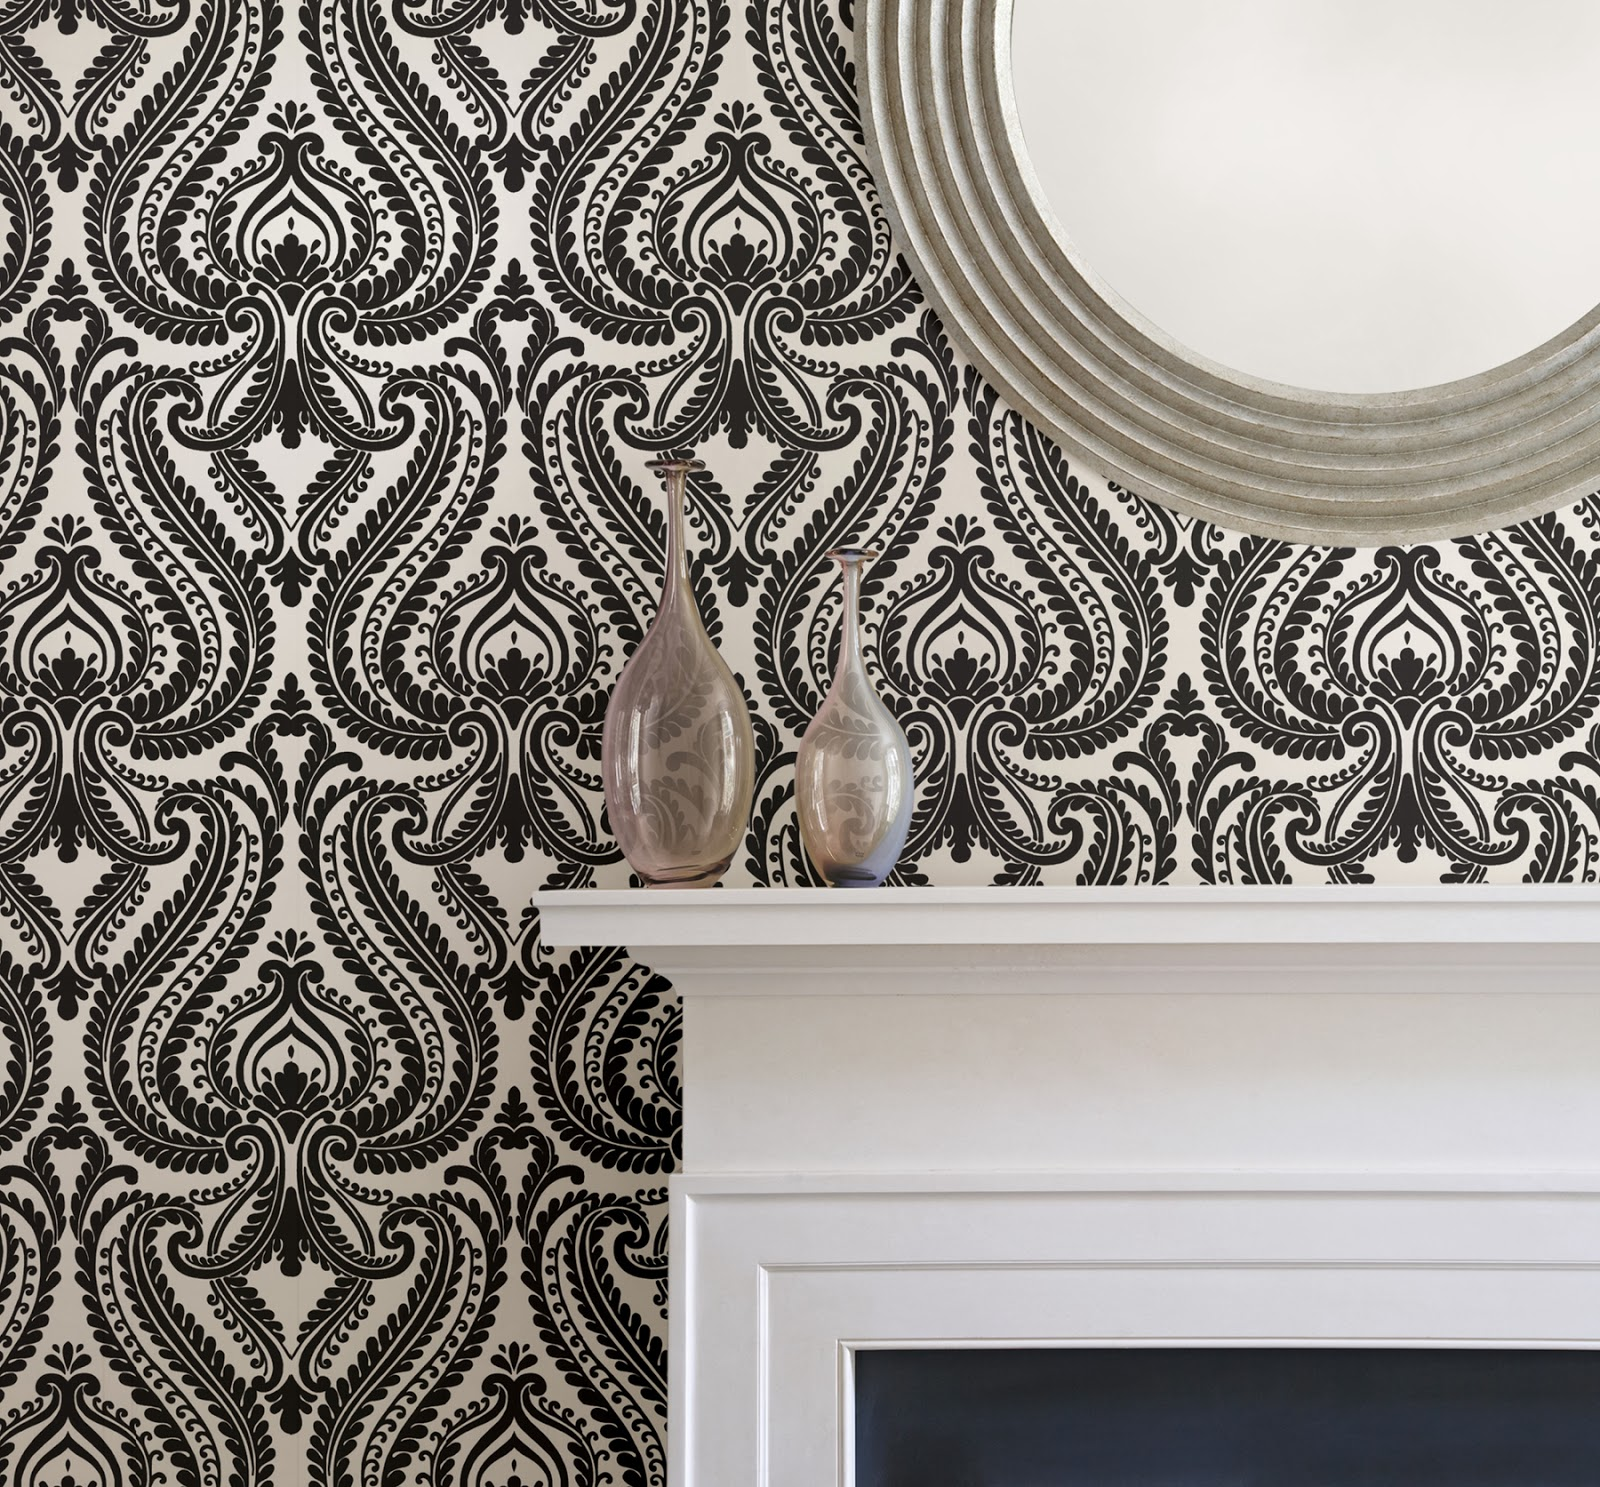 https://www.wallcoveringsforless.com/shoppingcart/prodlist1.CFM?page=_prod_detail.cfm&product_id=43350&startrow=13&search=Simple%20Space%202&pagereturn=_search.cfm